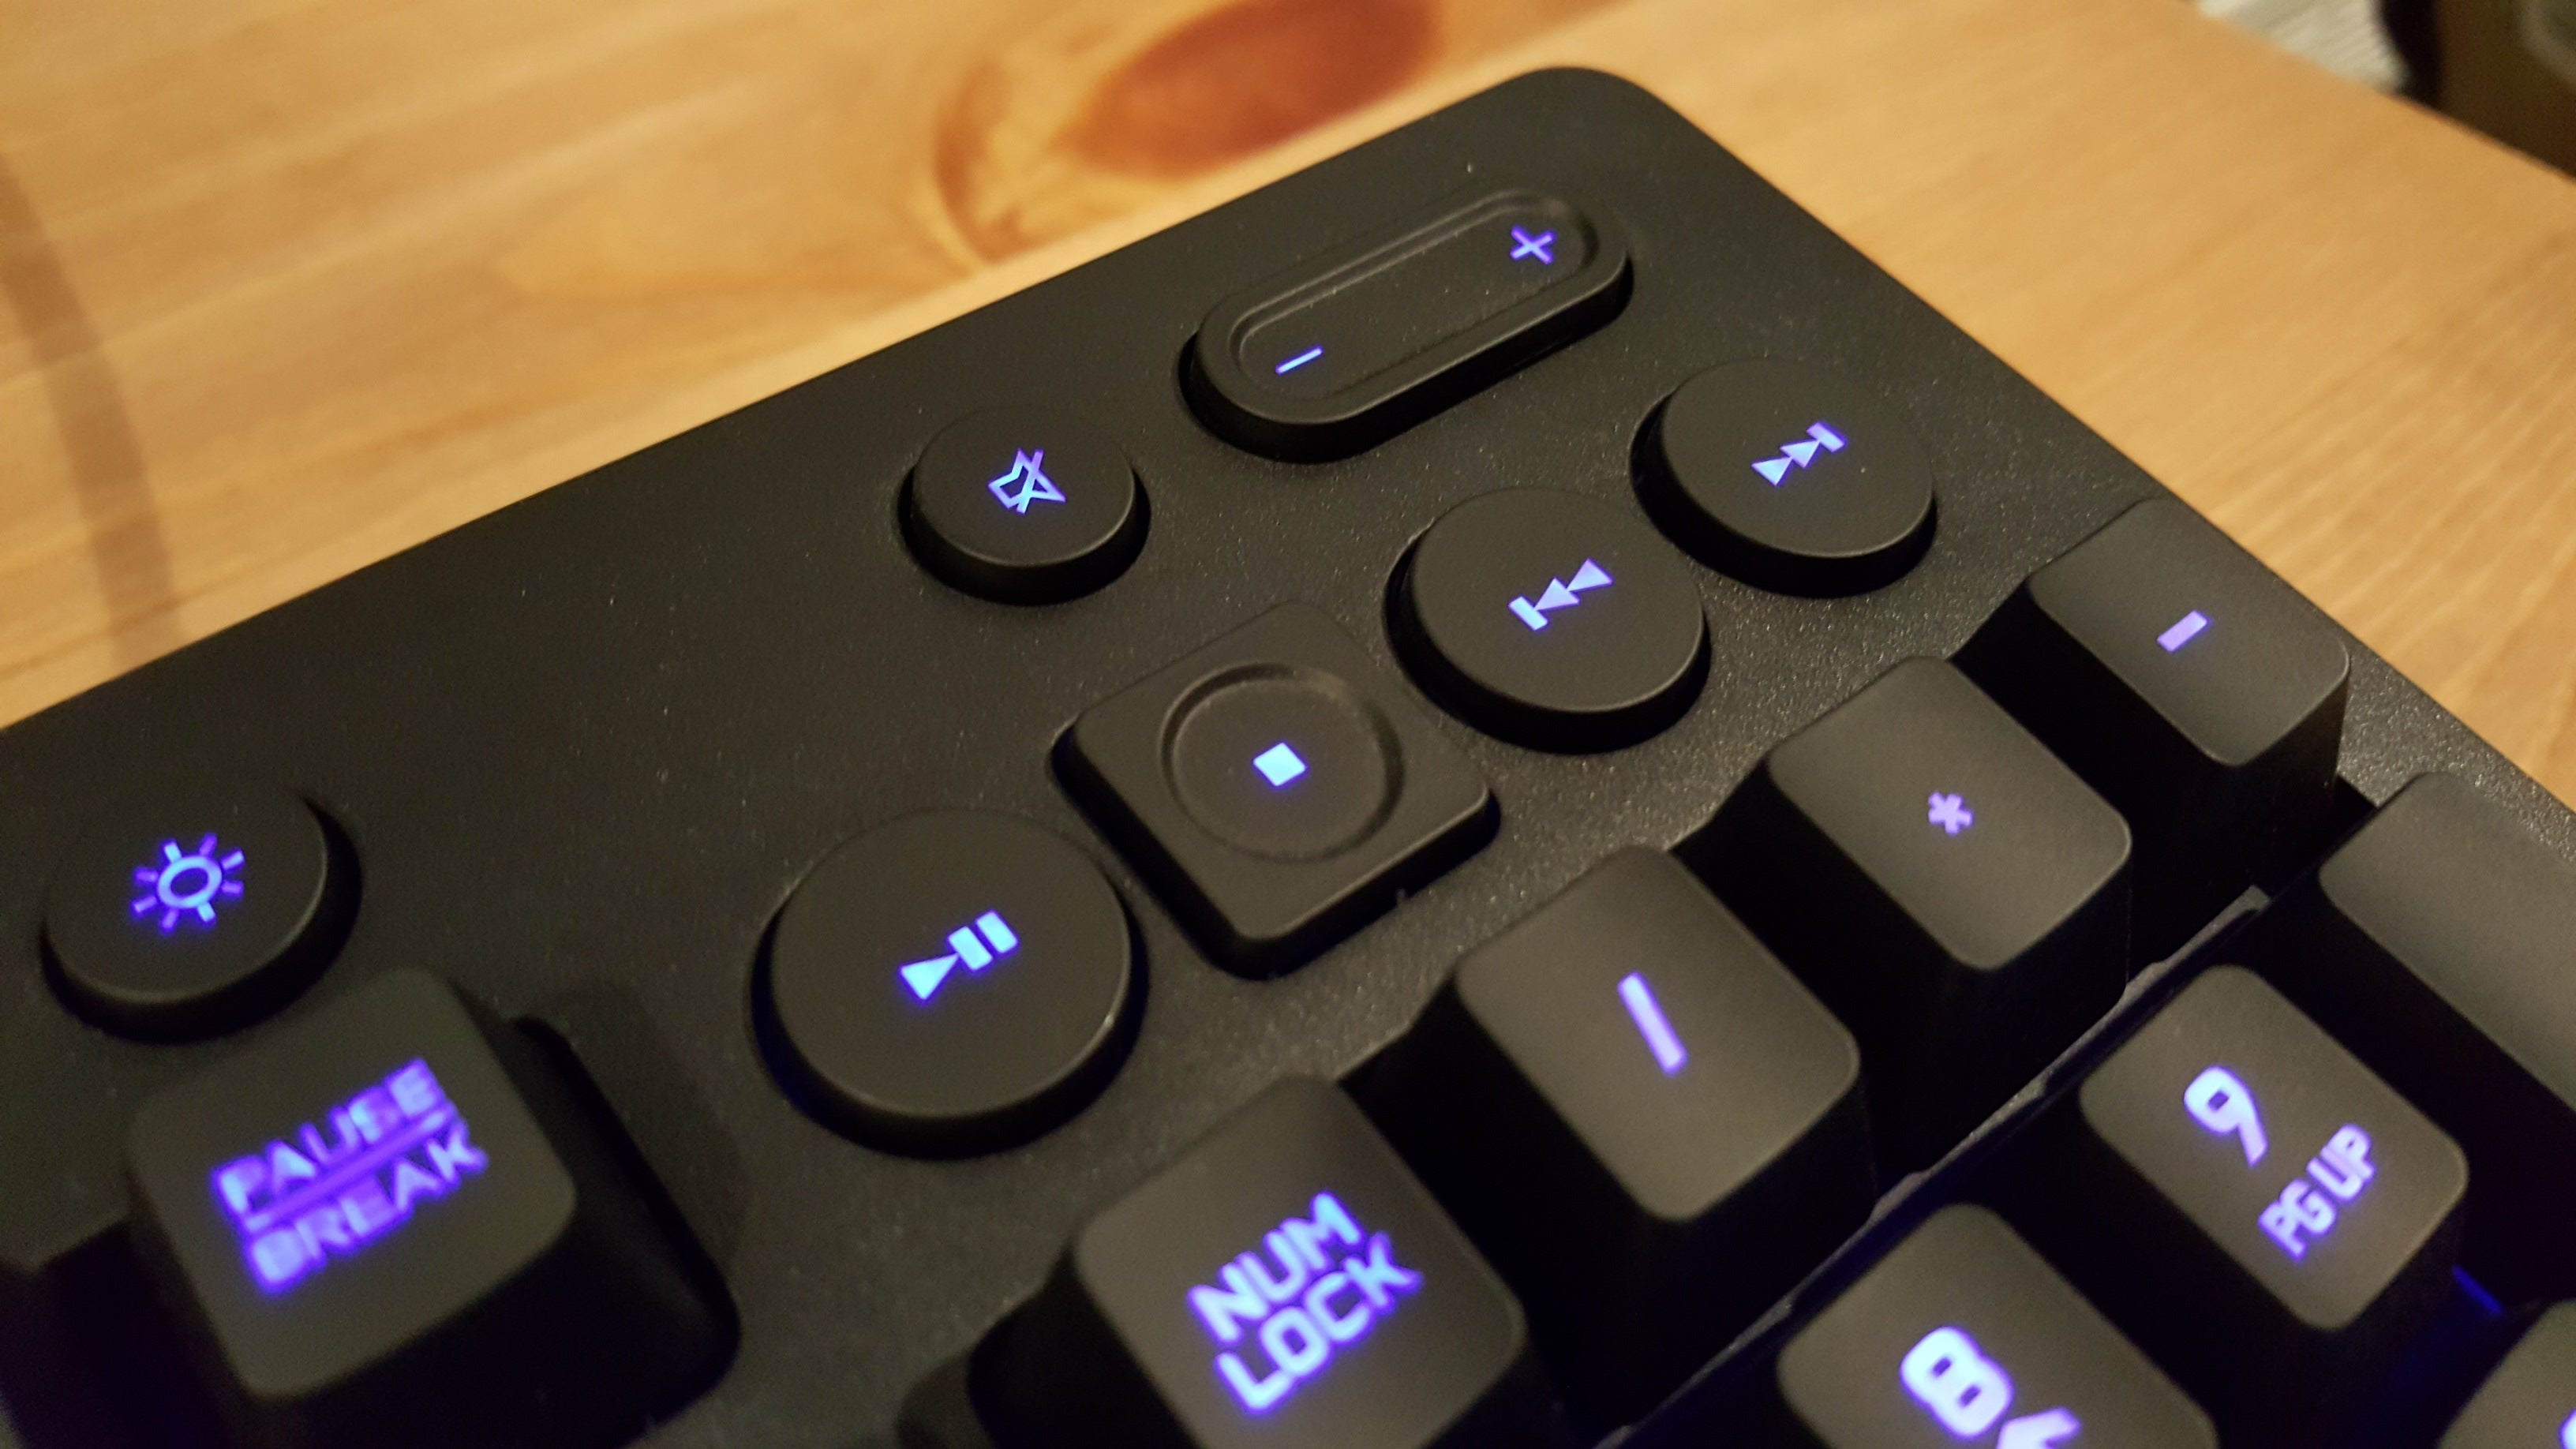 Logitech G213 Prodigy review: An ambitious keyboard that's